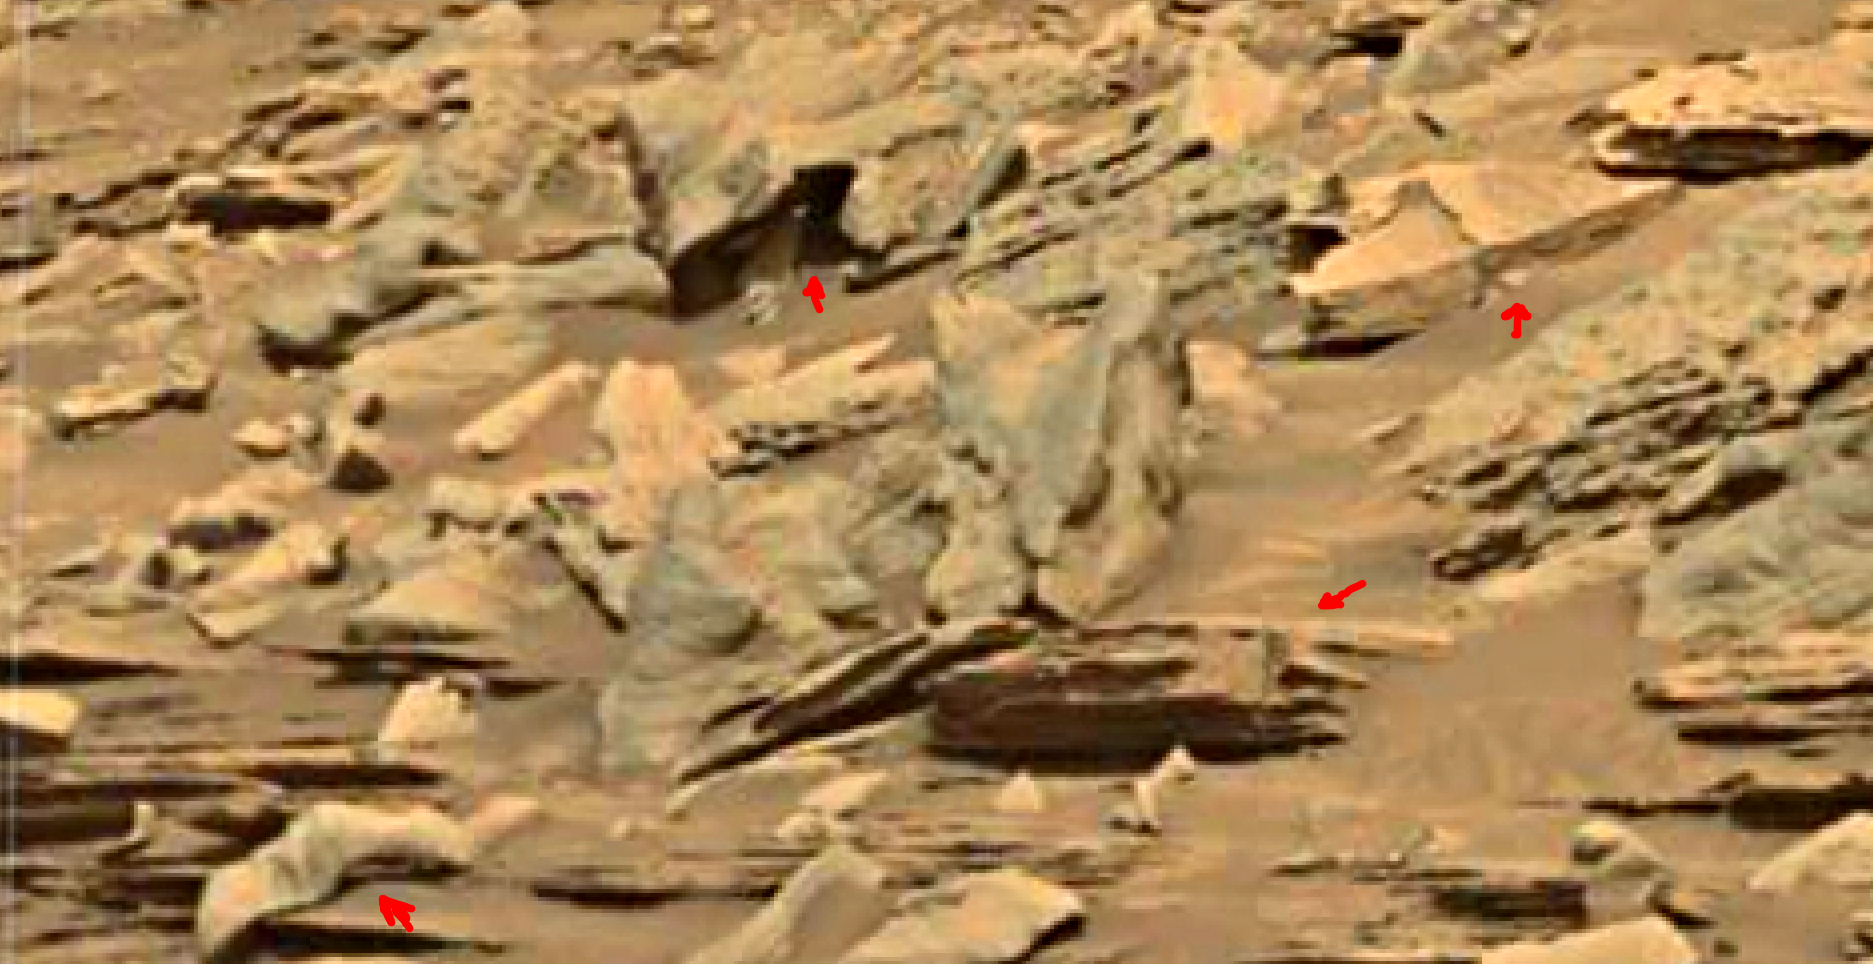 mars-sol-1451-anomaly-artifacts-6-was-life-on-mars